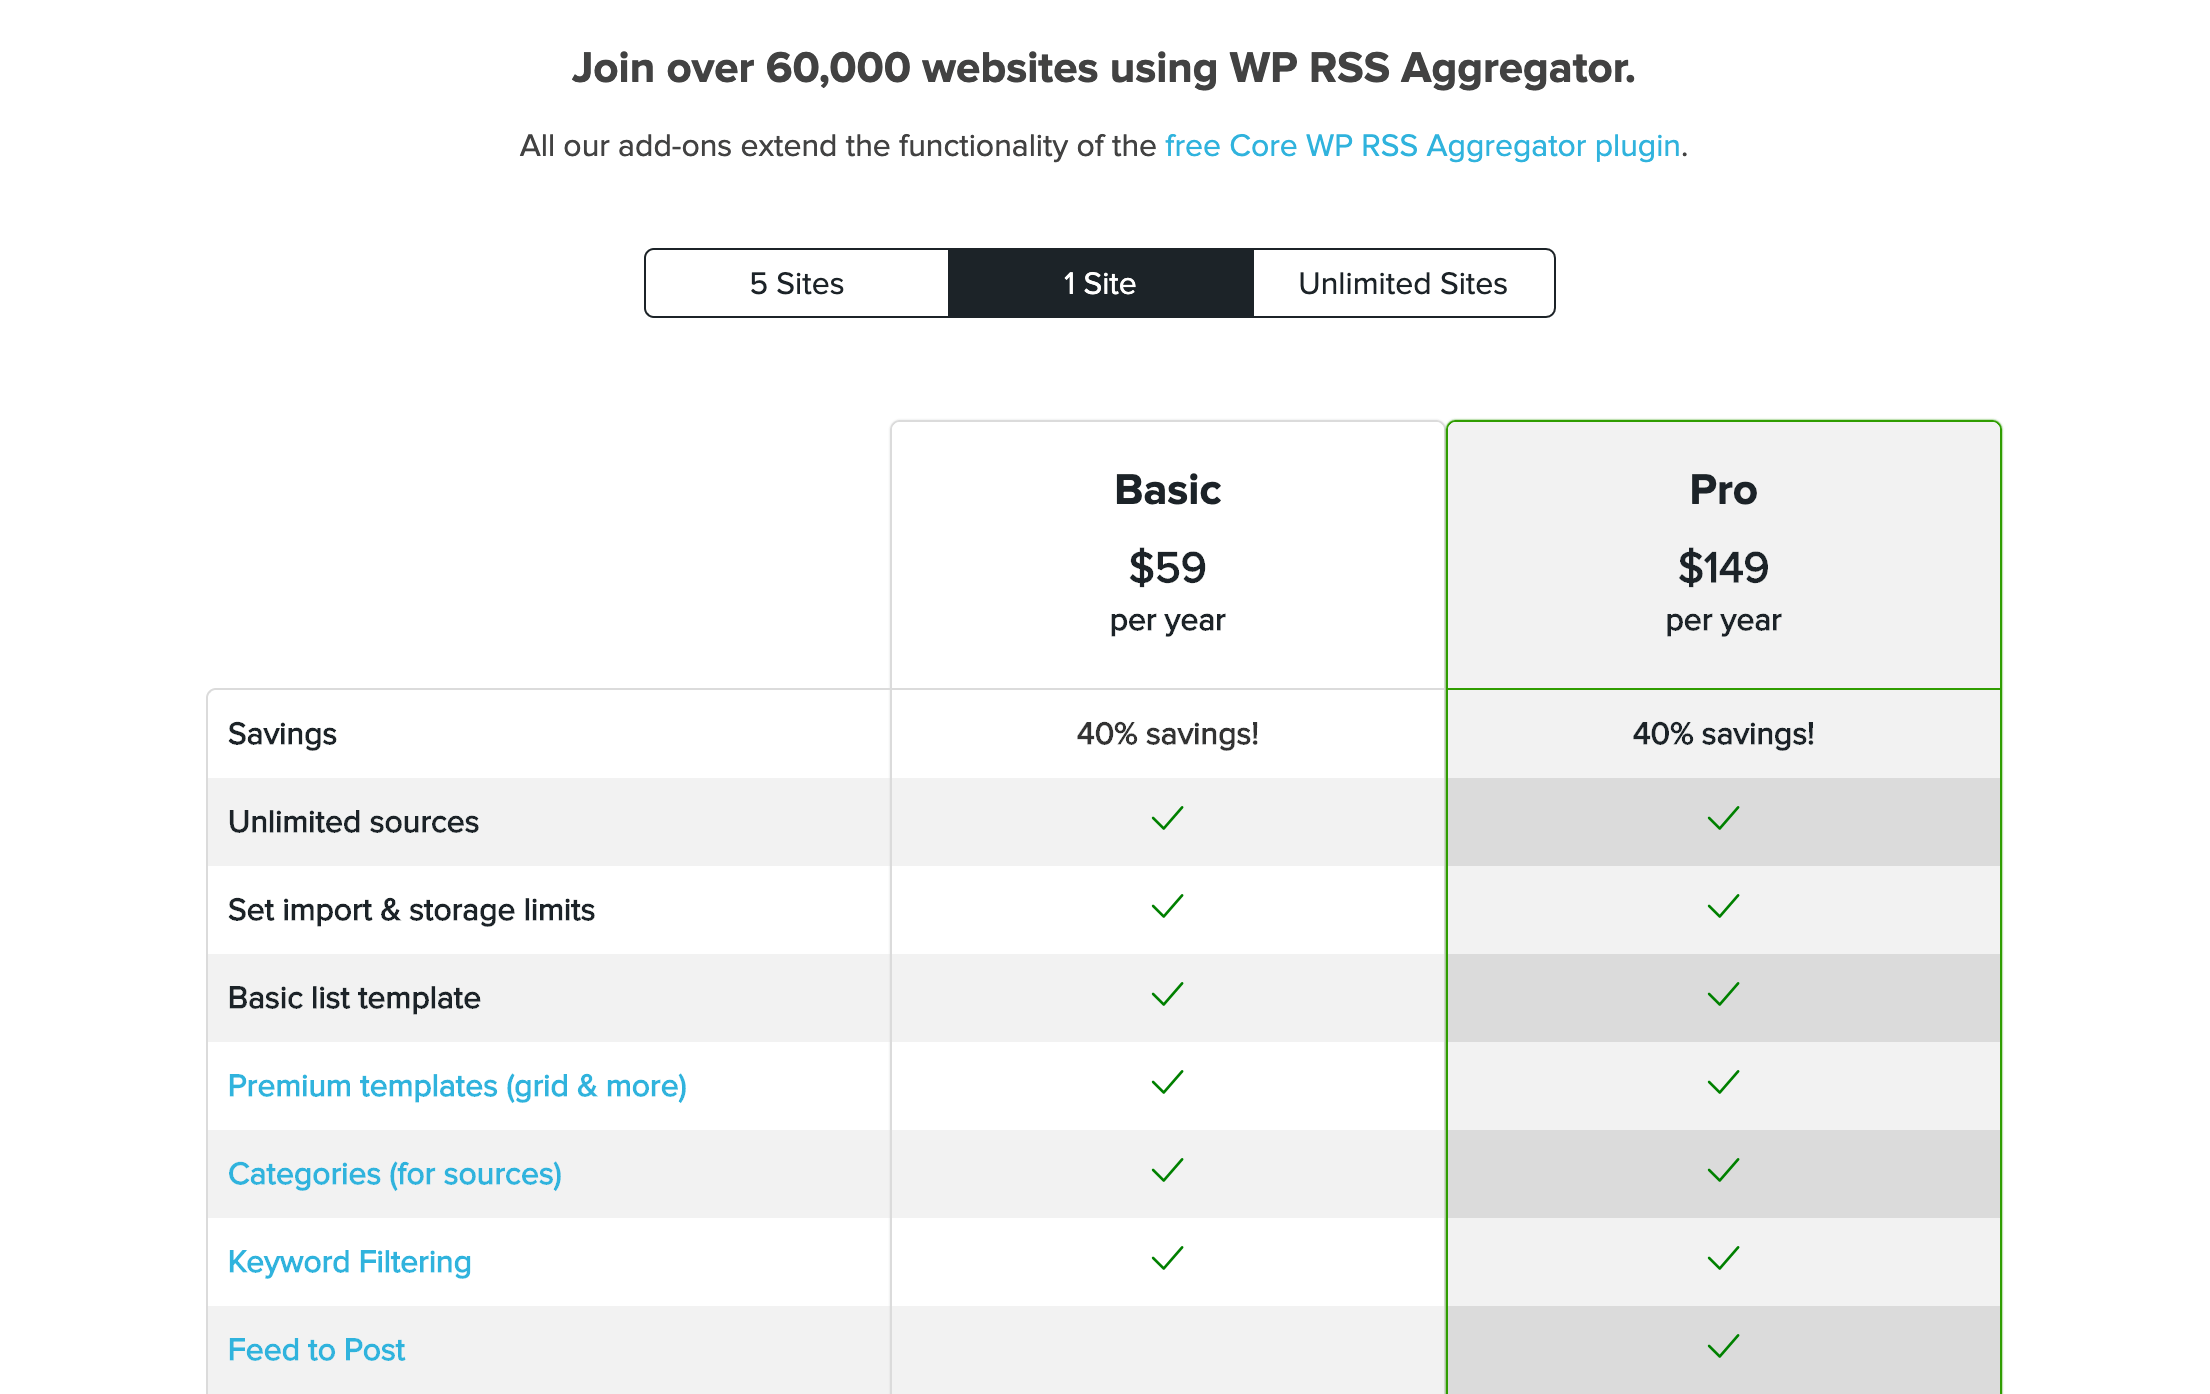 The WP RSS Aggregator plans pricing table.